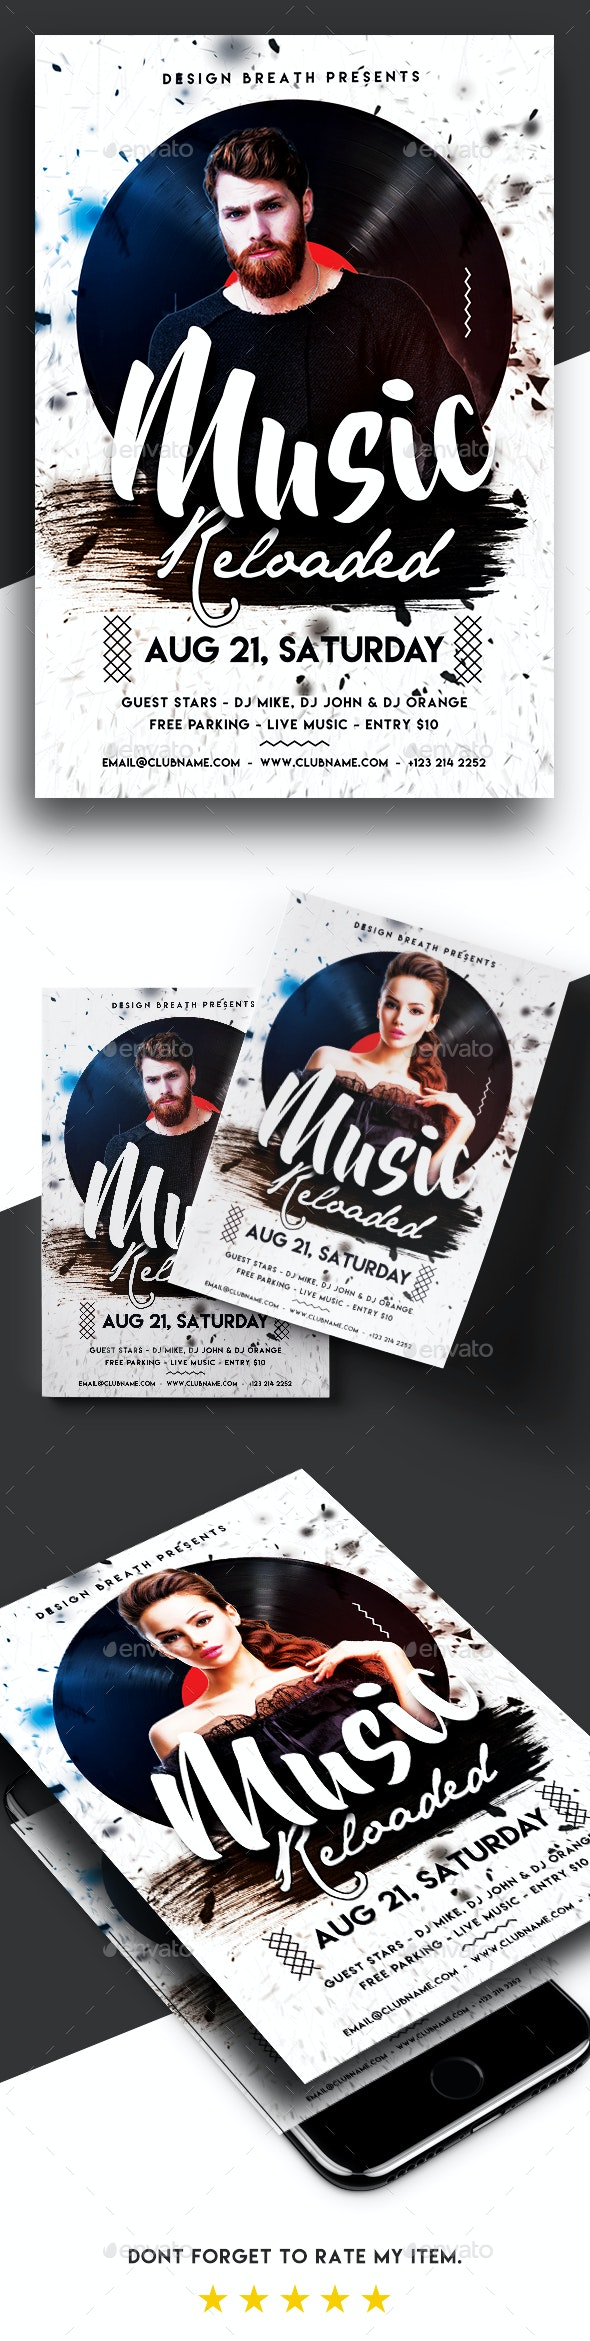 Music Reloaded Party Flyer - Clubs & Parties Events